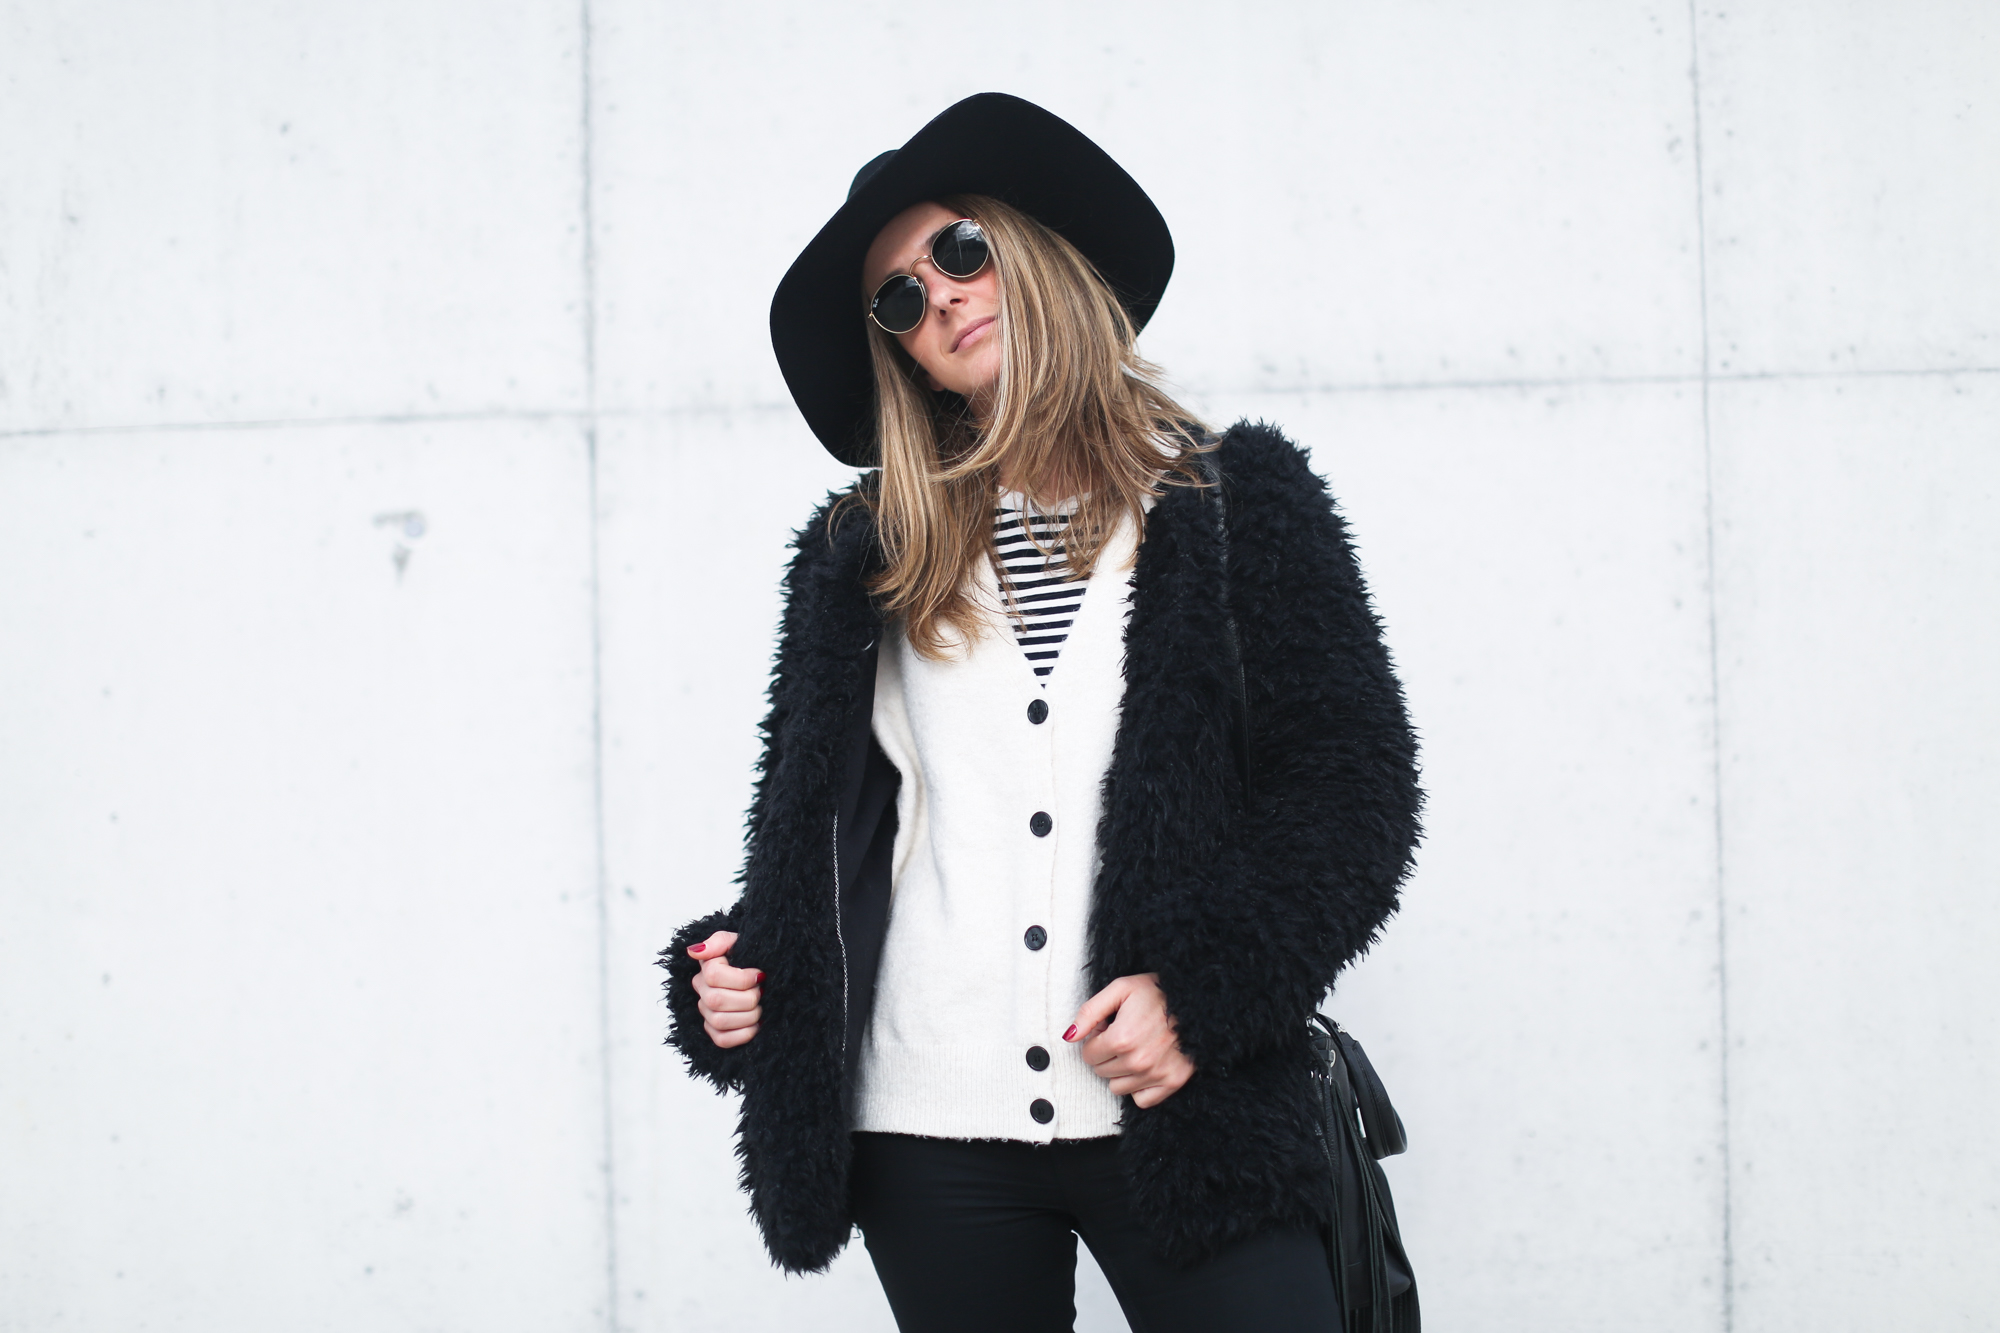 clochet_streetstyle_Billabong_Christmas_collection_furry_coat-13